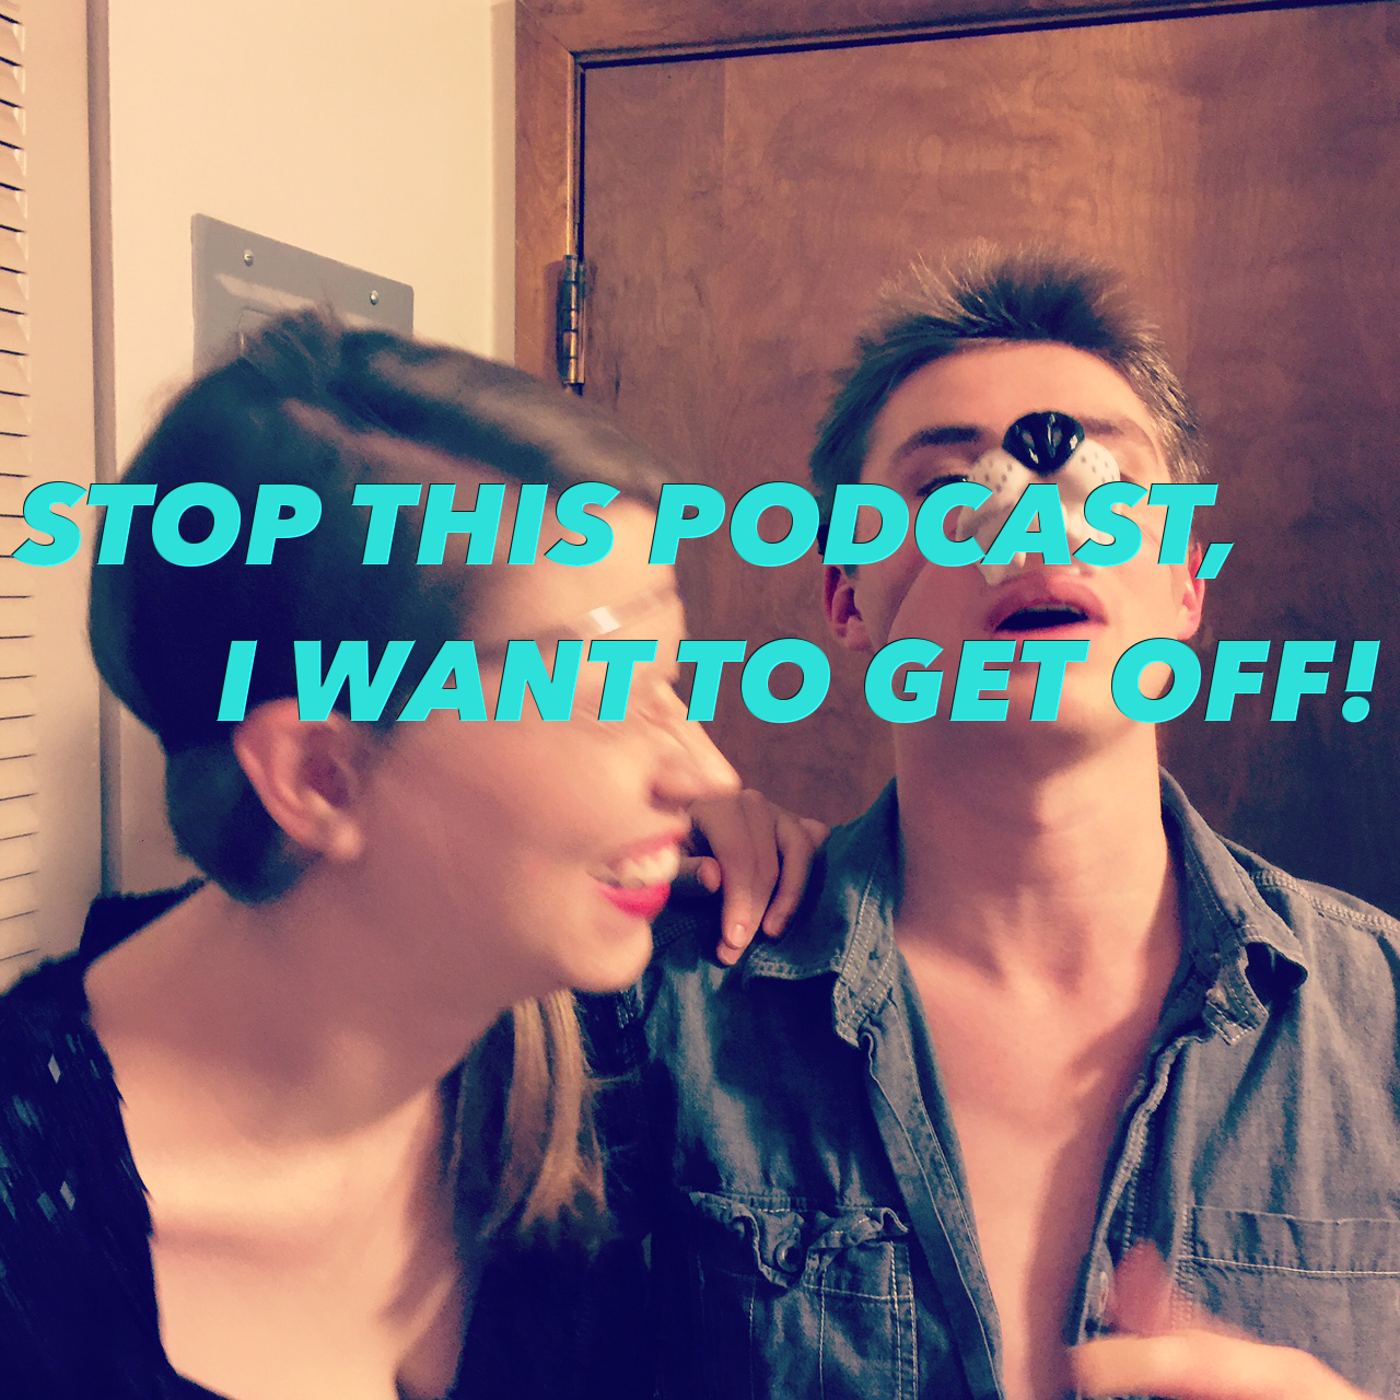 Ep. 17: It Just Hit Me That This Is A Relationship Advice Podcast show art